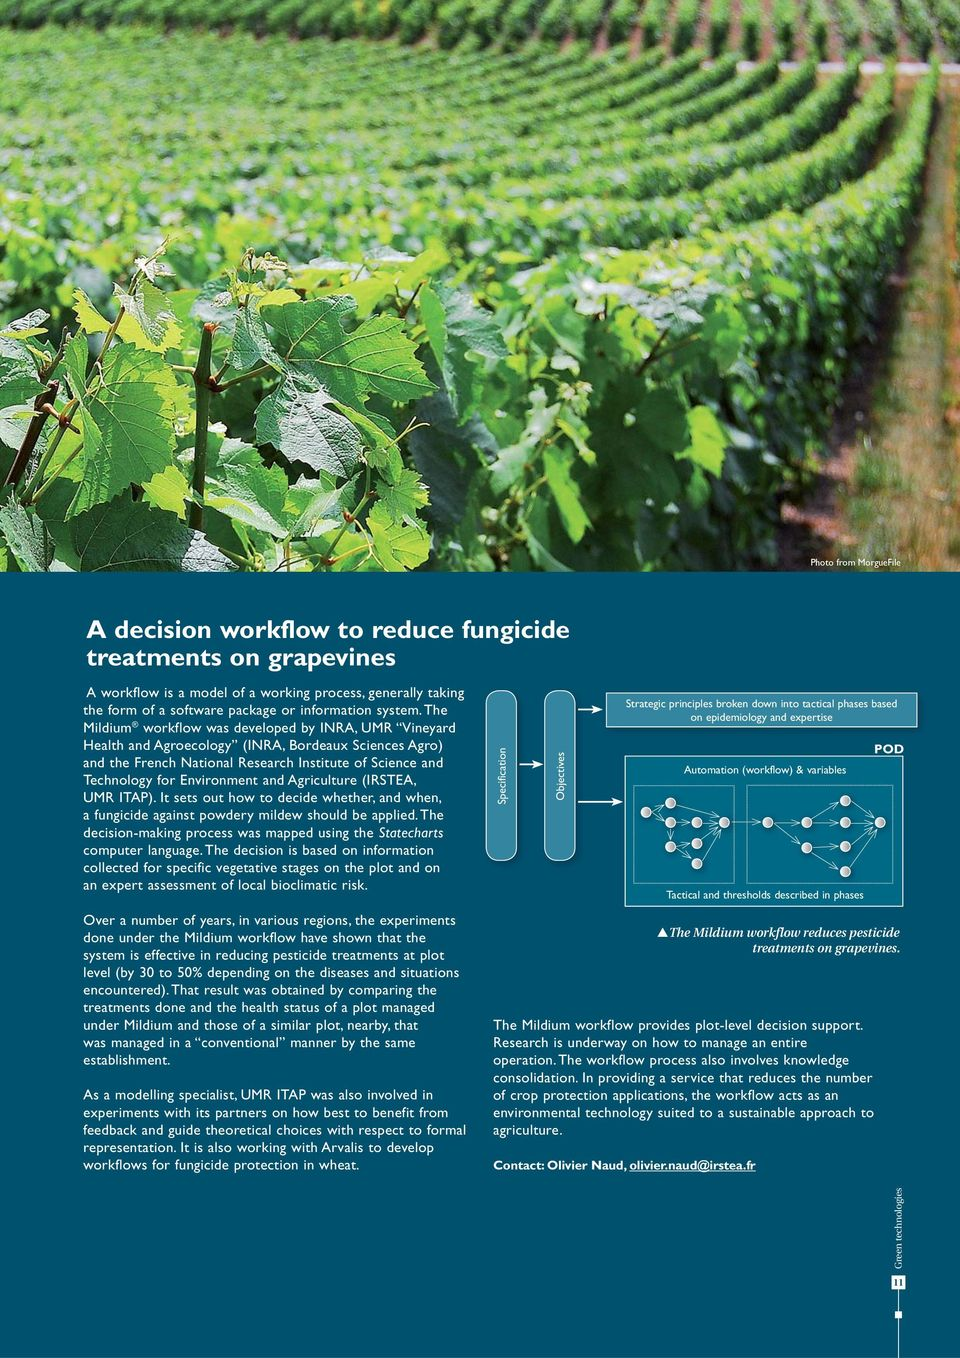 The Mildium workflow was developed by INRA, UMR Vineyard Health and Agroecology (INRA, Bordeaux Sciences Agro) and the French National Research Institute of Science and Technology for Environment and